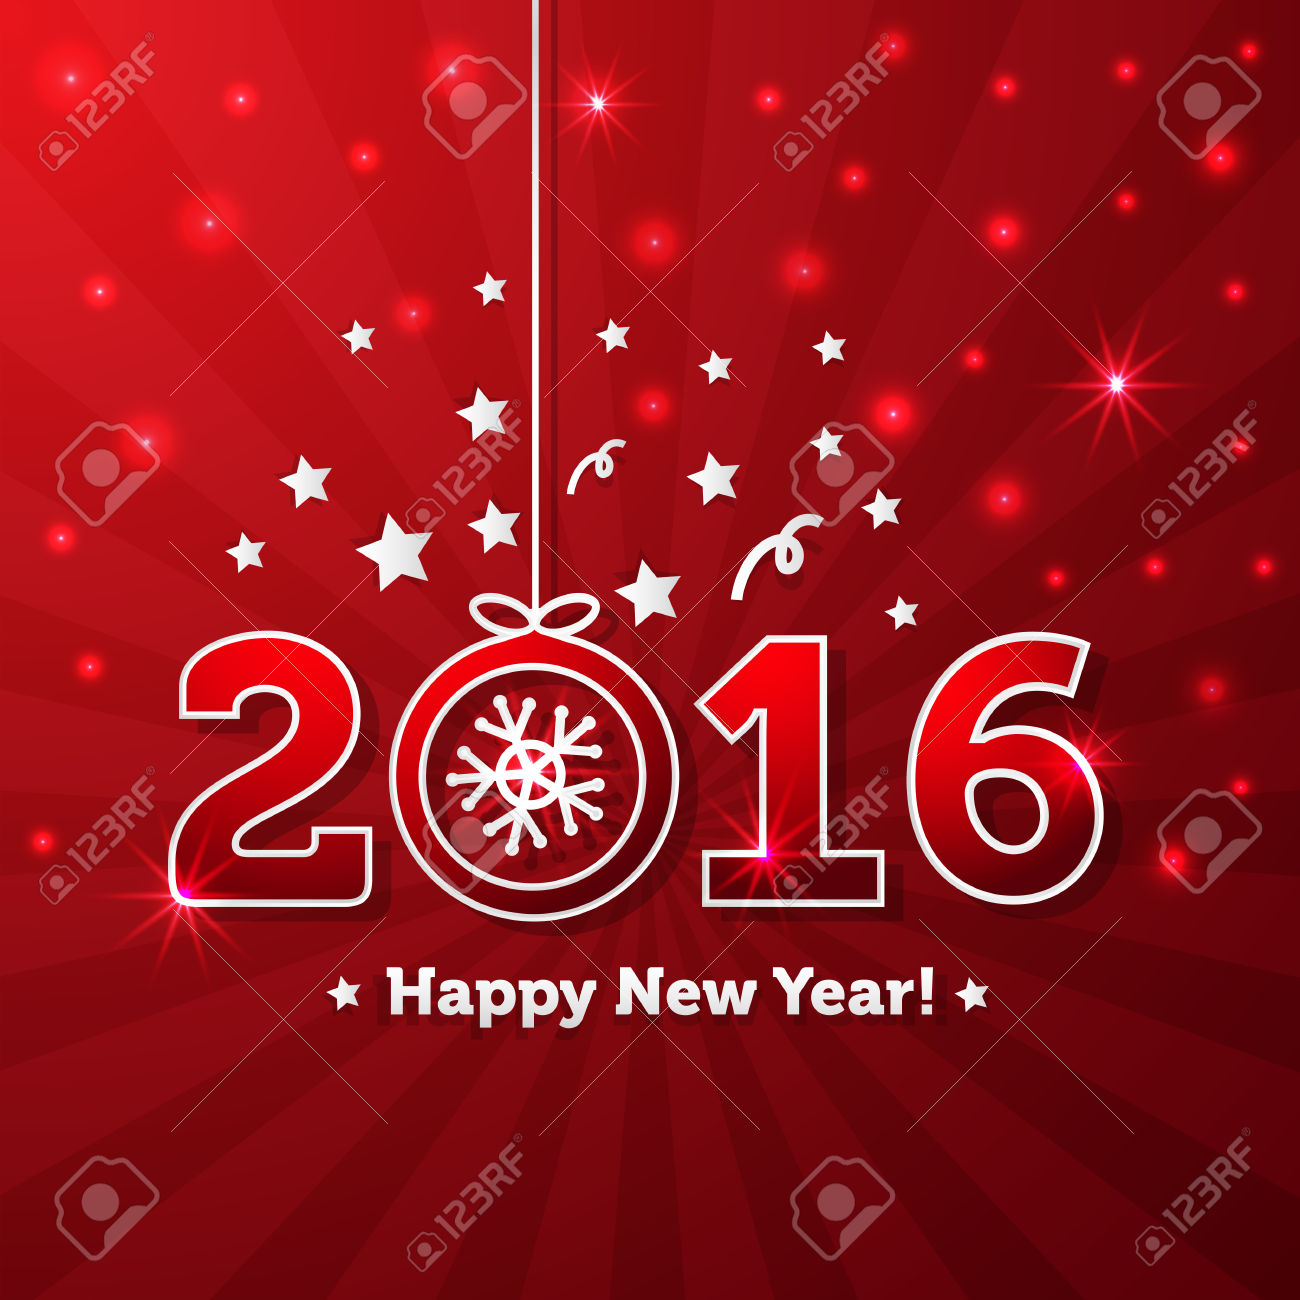 2016 clipart banner. Free new year clip